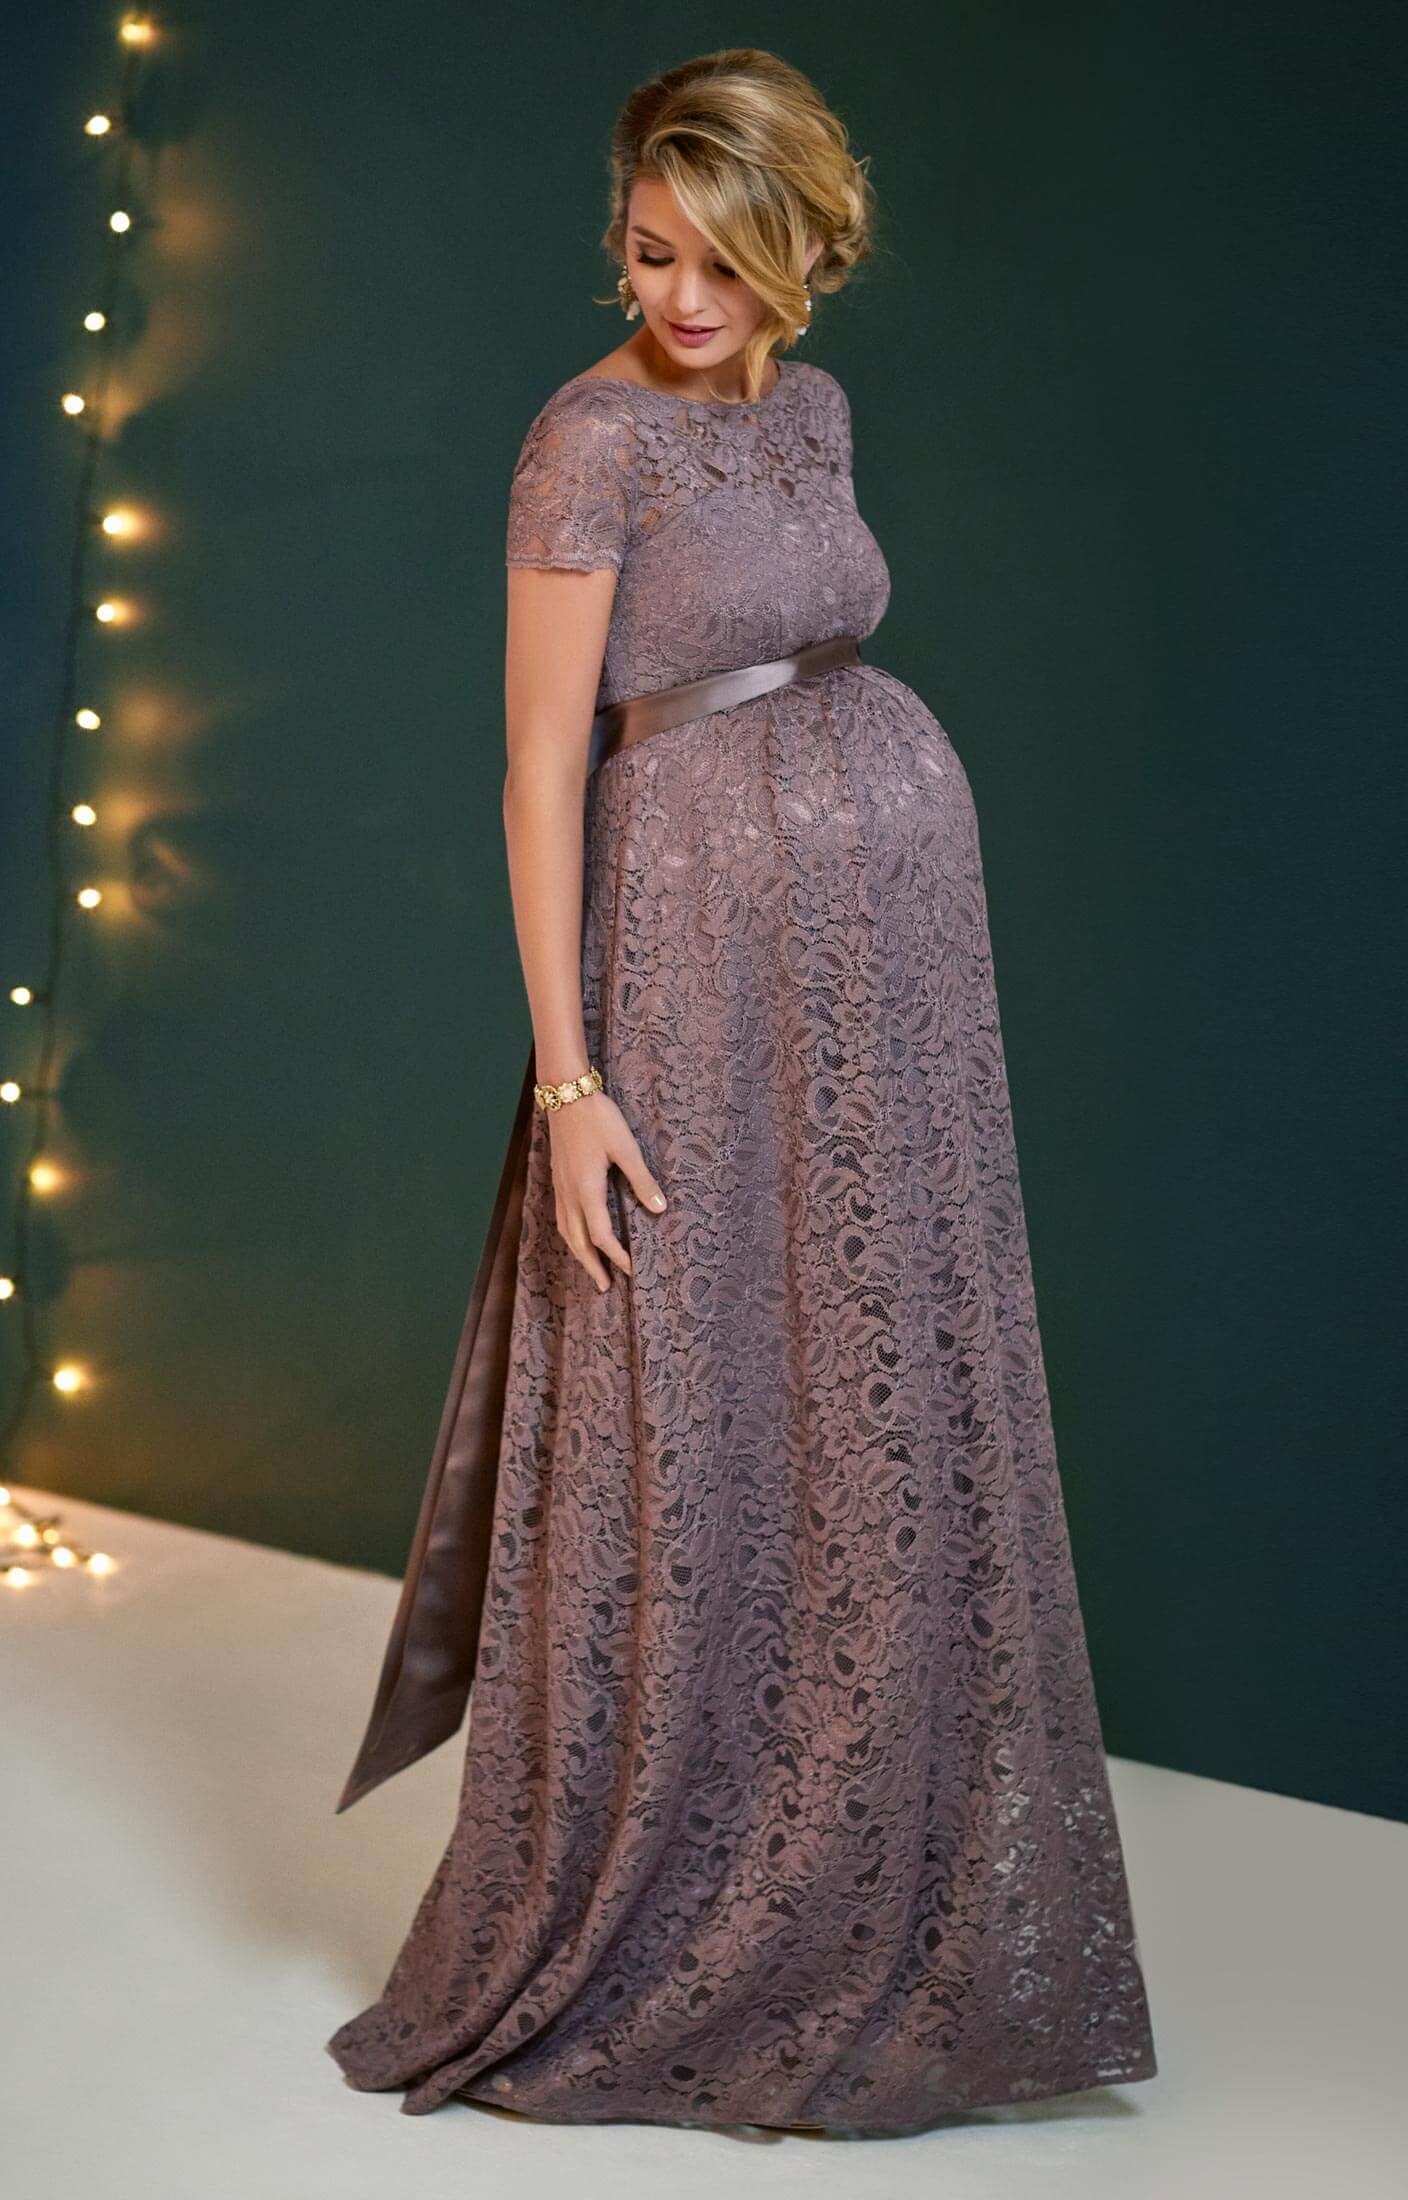 Penelope Lace Maternity Gown Vintage Violet Maternity Wedding Dresses Evening Wear And Party Clothes By Tiffany Rose Us